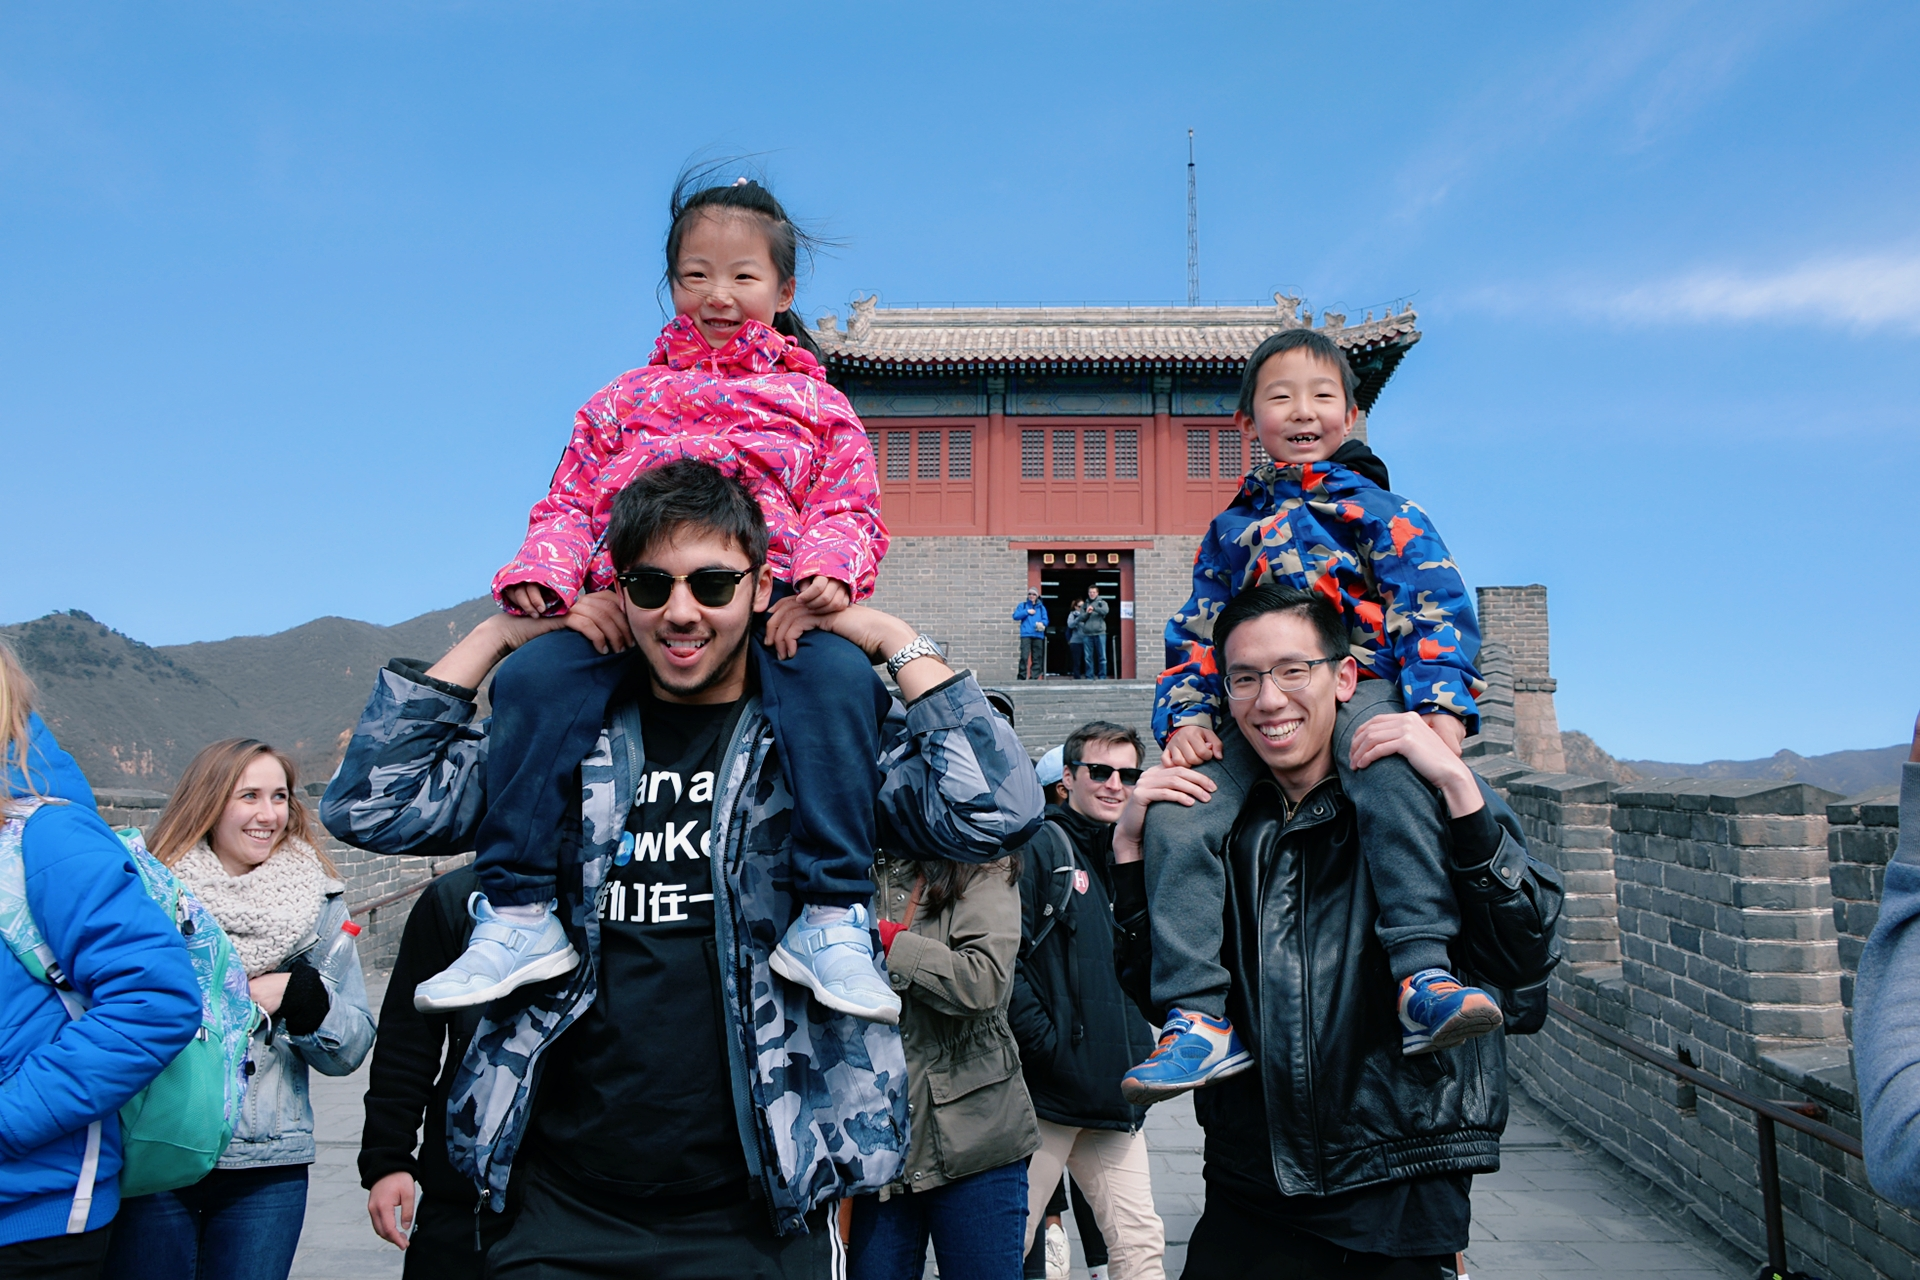 The LowKeys on tour in China!